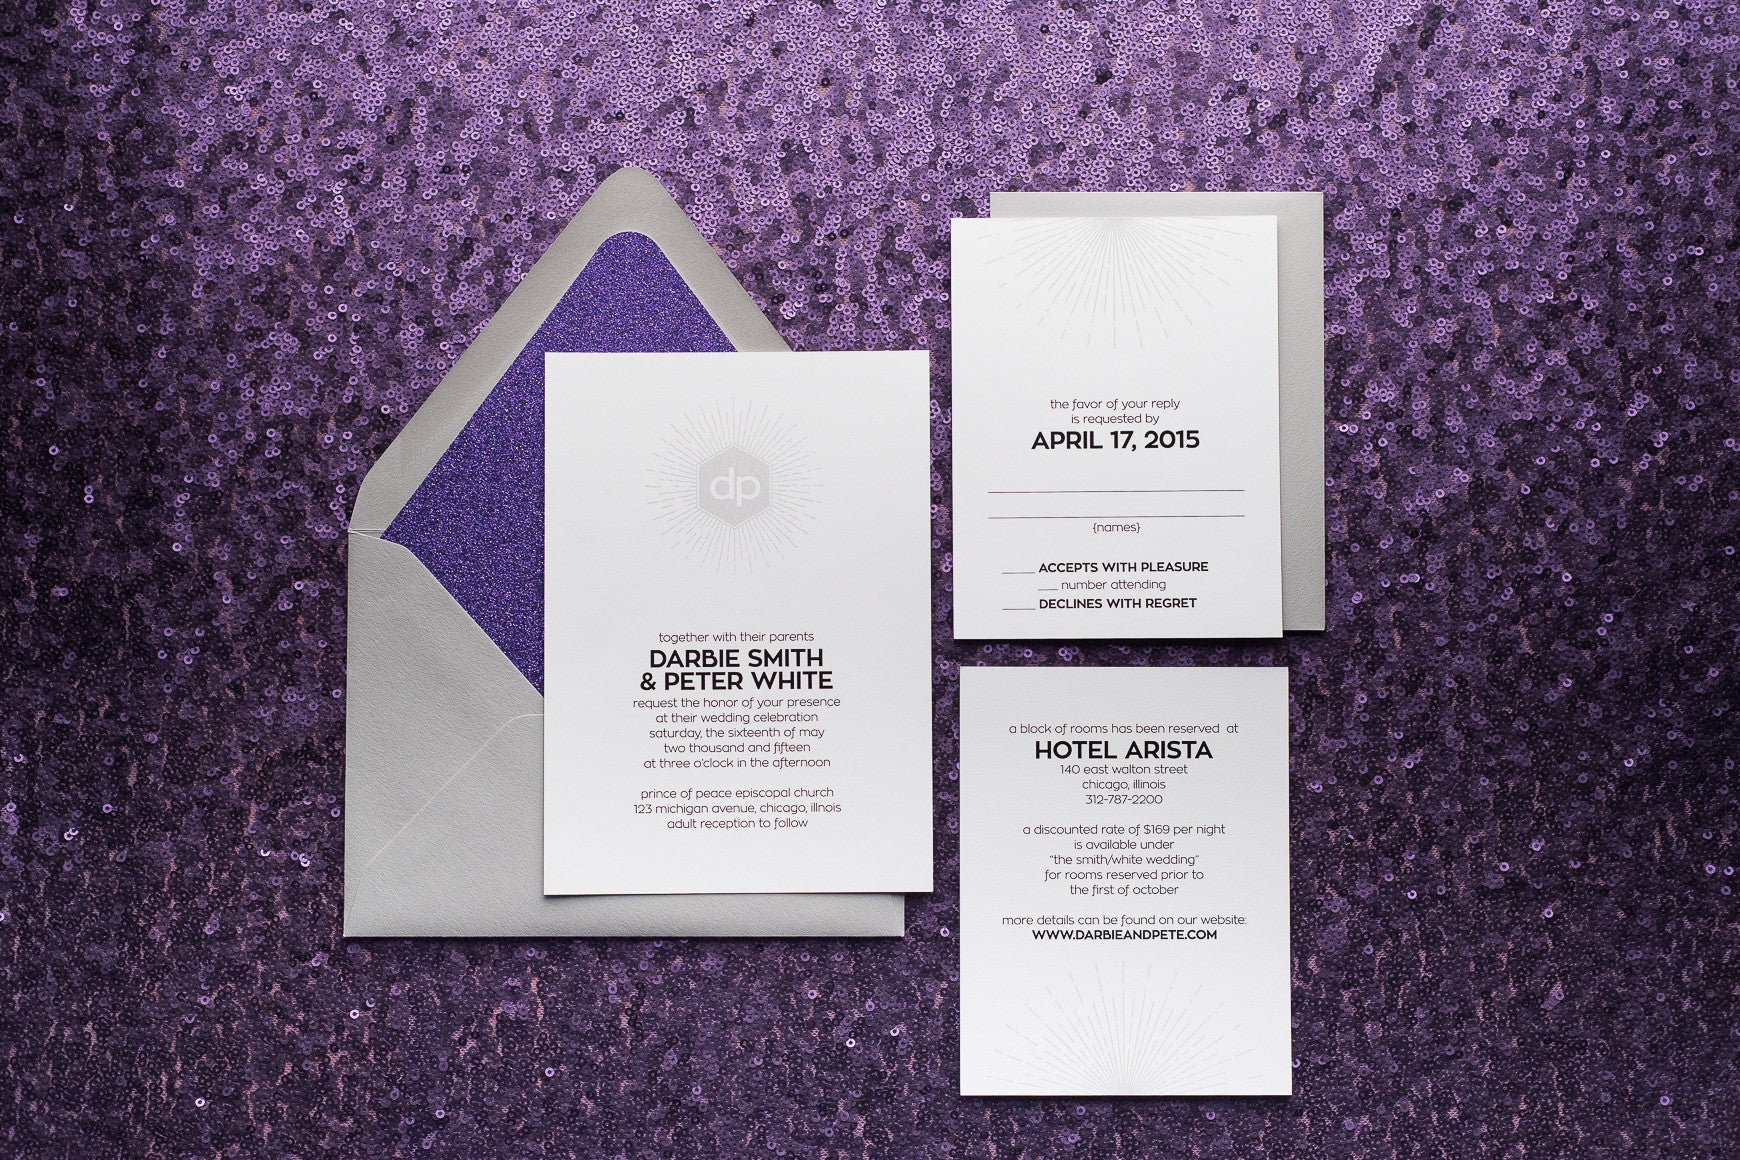 Our Darling Darbie Suite | Elegantly Modern Digitally Printed Wedding Invitations in Silver and Purple Glitter!